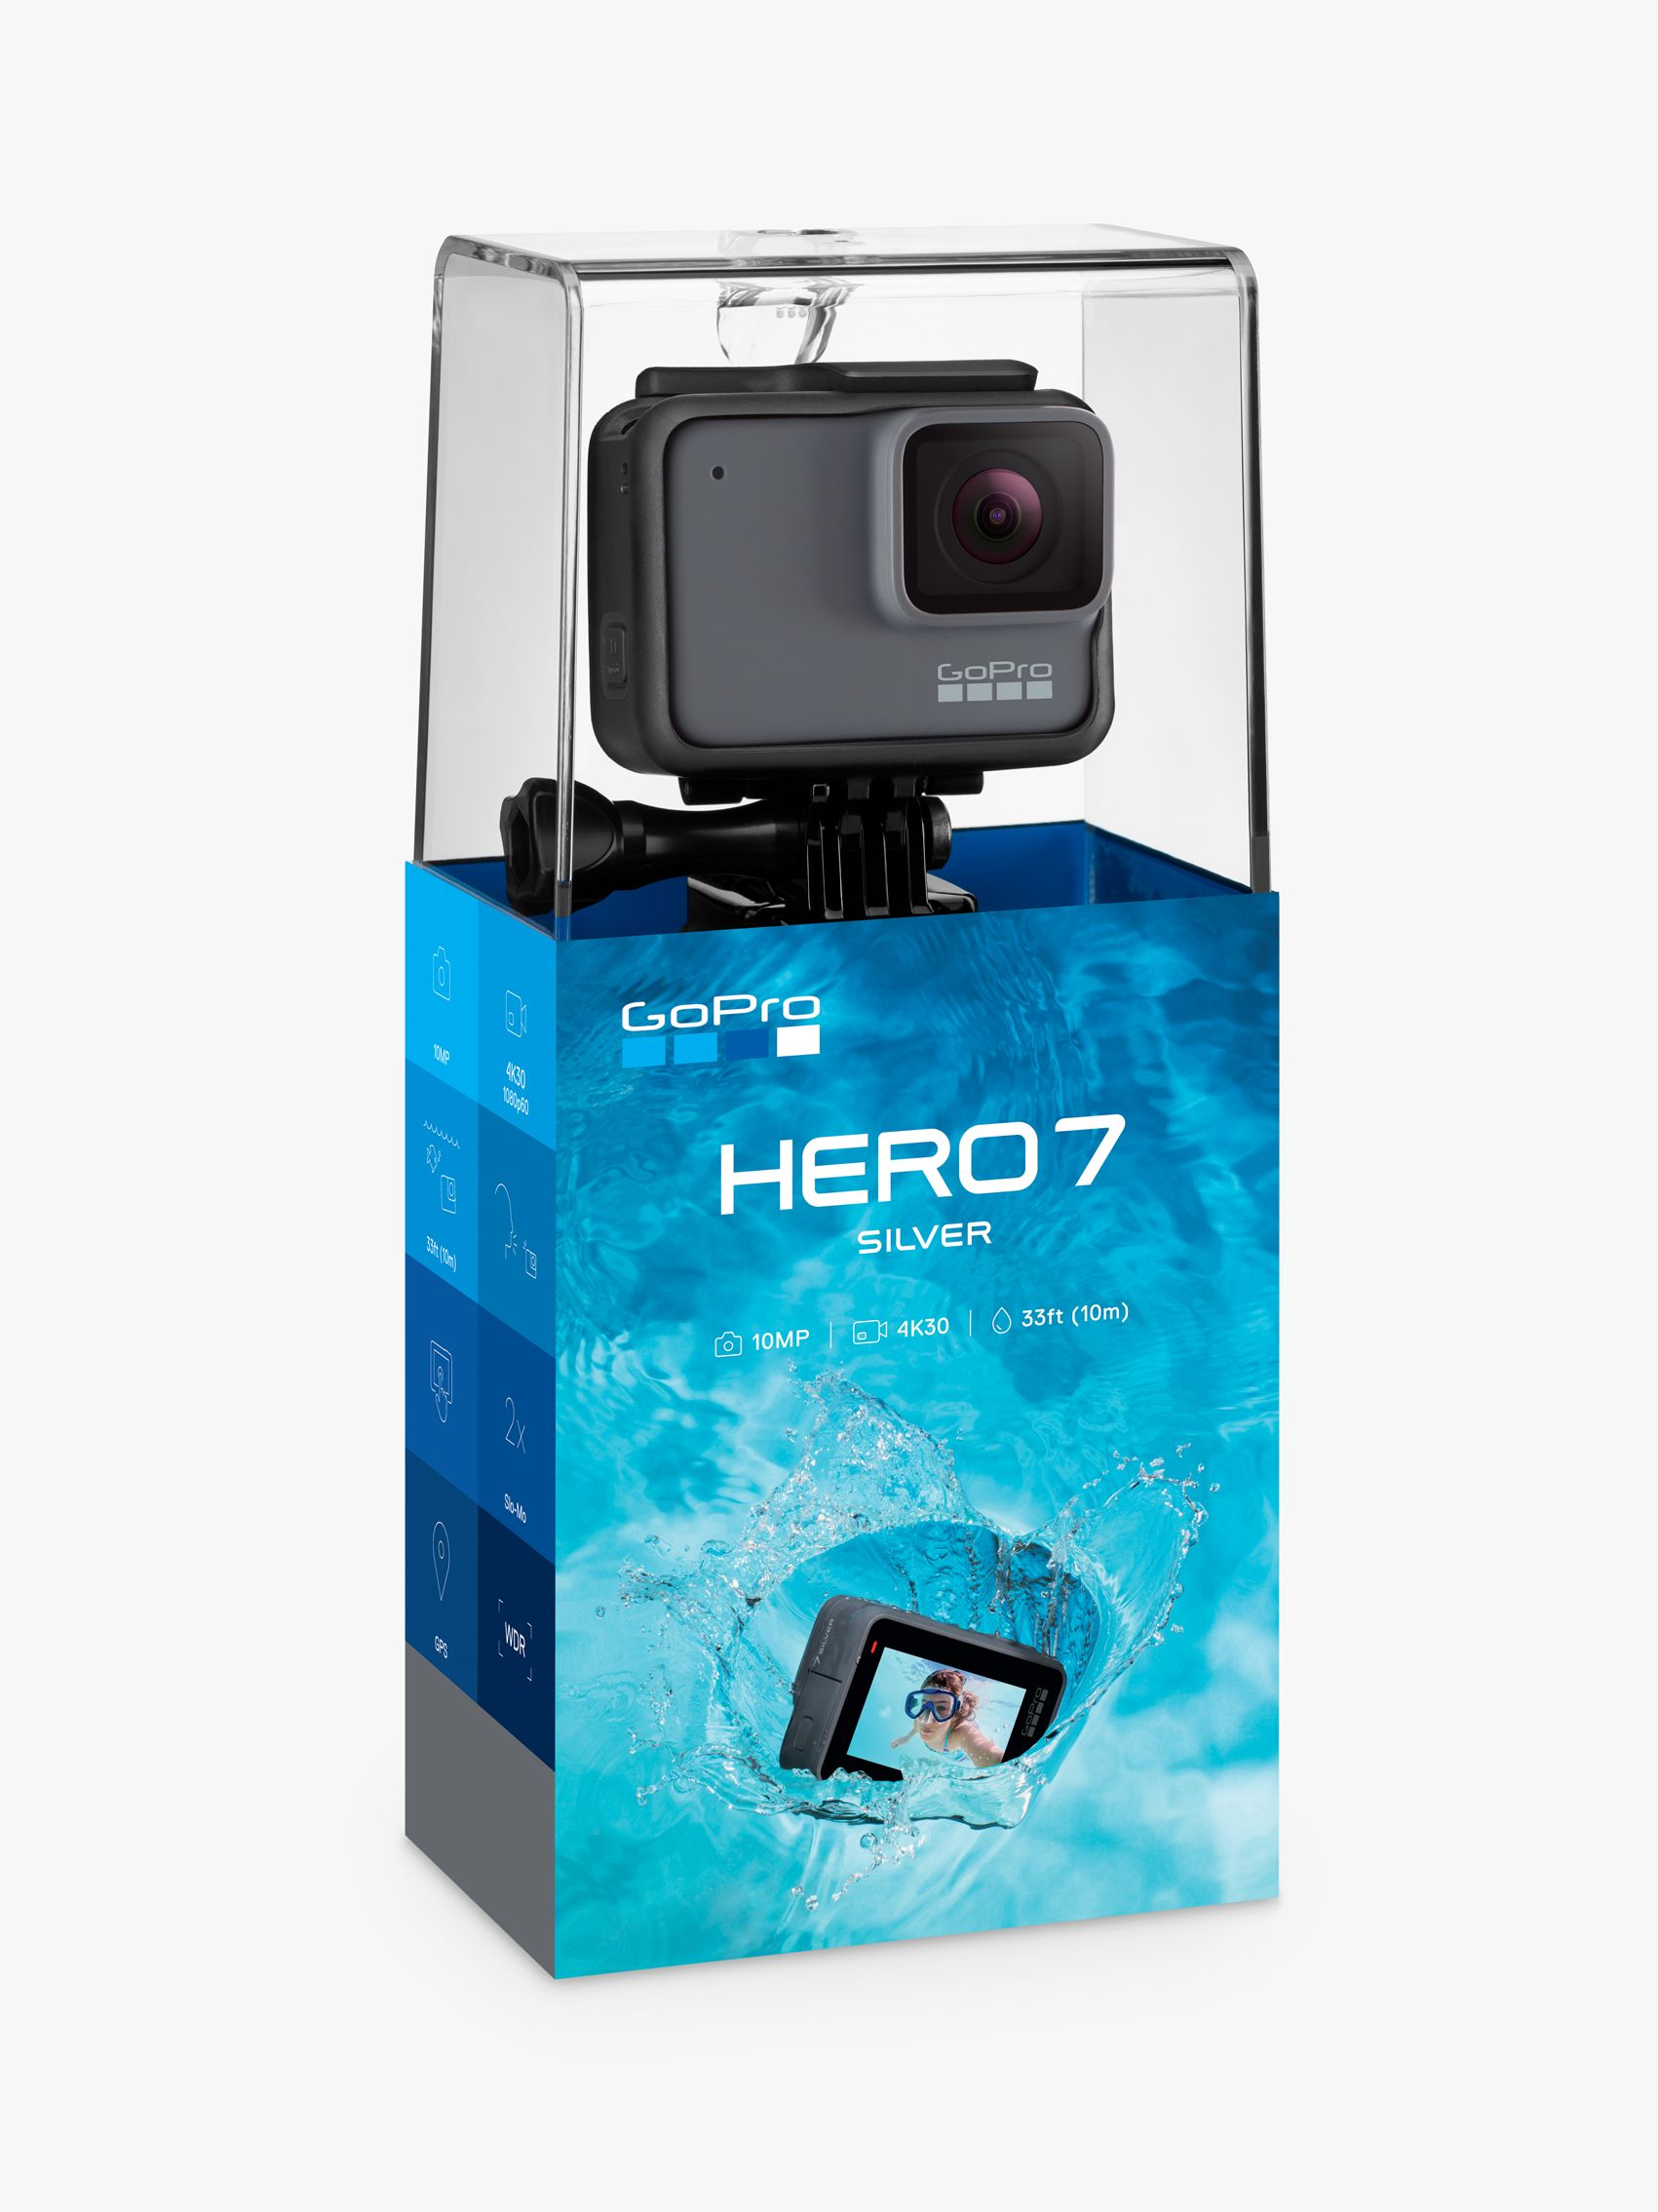 Gopro GoPro HERO7 Silver Camcorder, 4K Ultra HD, 30 FPS, 10MP, Wi-Fi, Waterproof, GPS